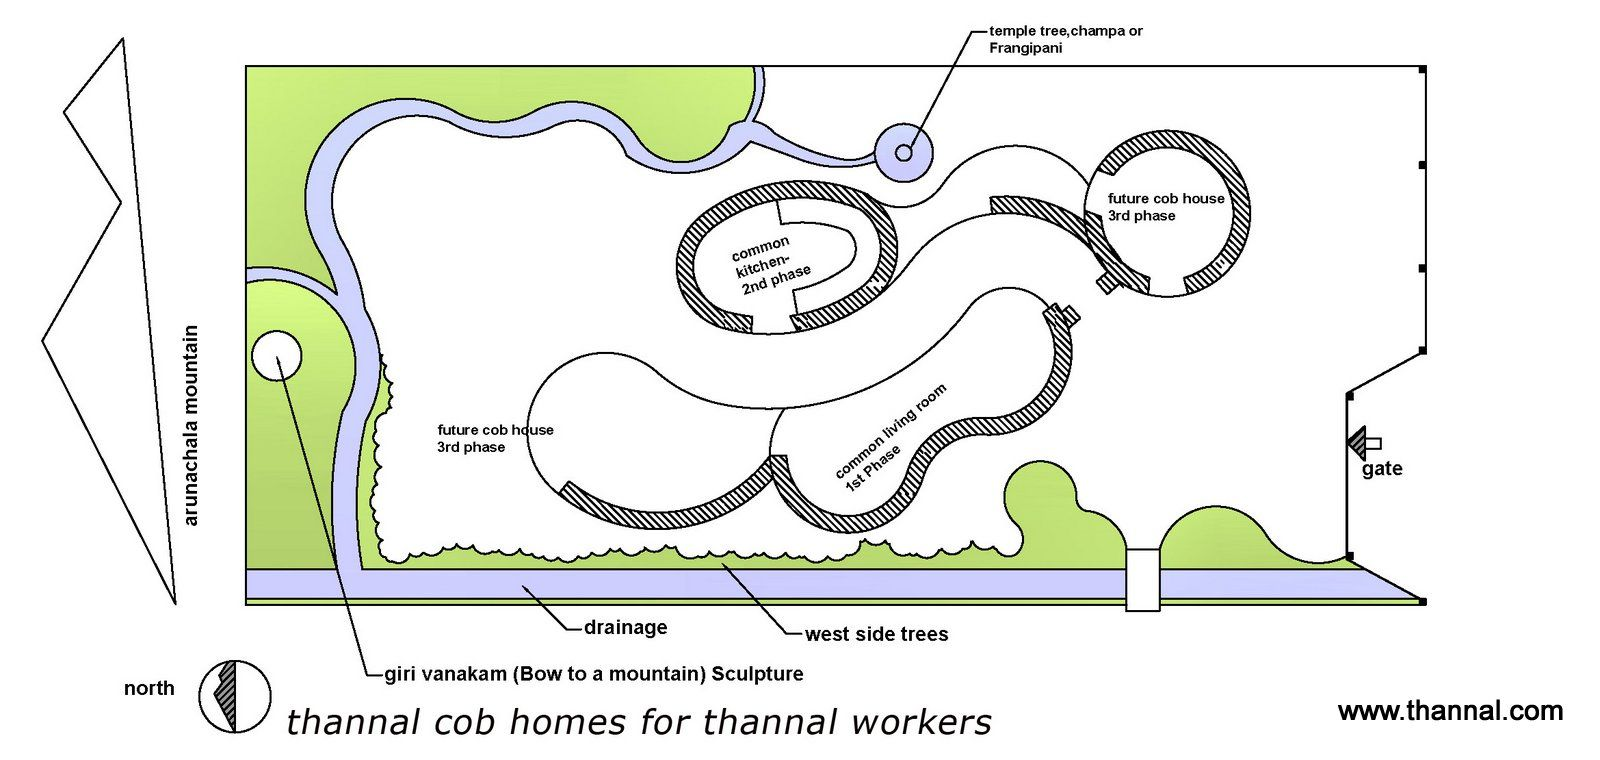 Earthship plans and designs pictures - Thannal Cob House Plan India By Architect Biju Bhaskar